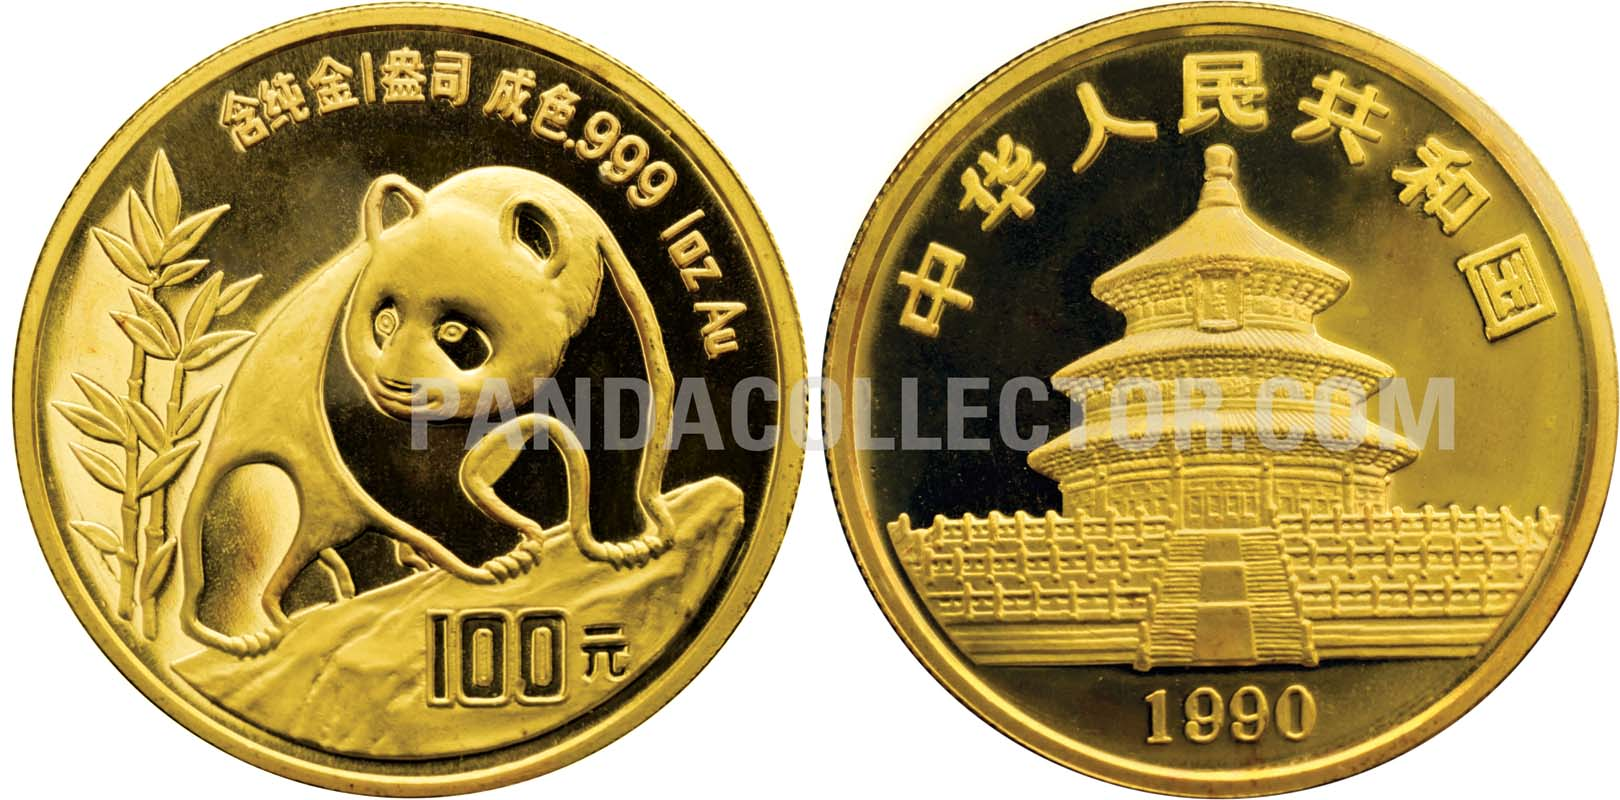 1990 Genuine 100 Yuan Gold Panda